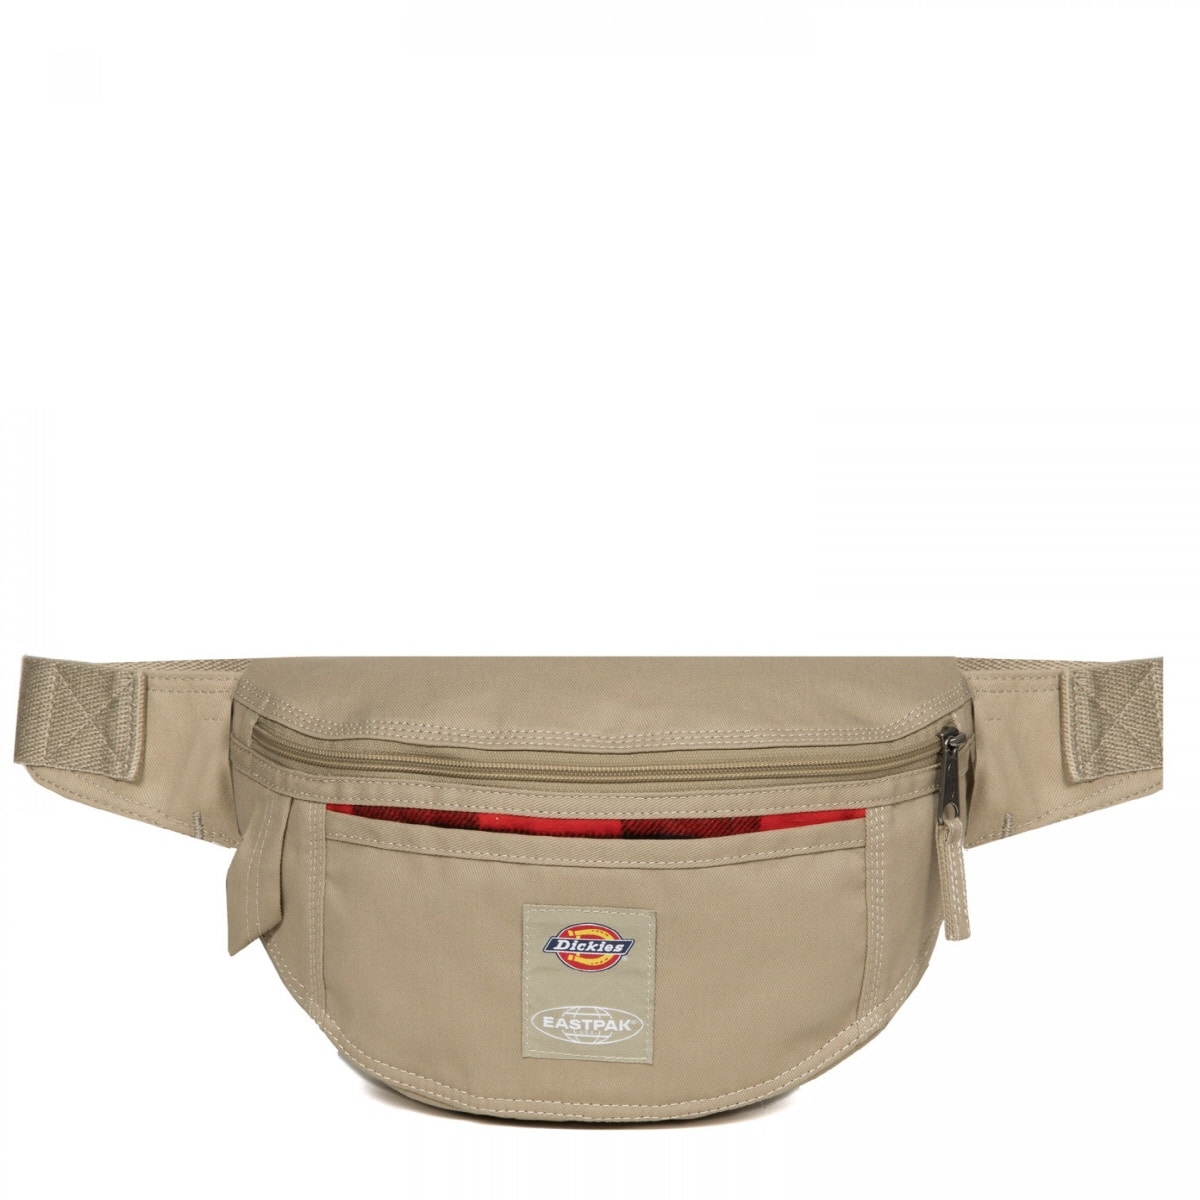 [COLLABO par2] DICKIES X EASTPAK 번델 EJCBW07 86Y